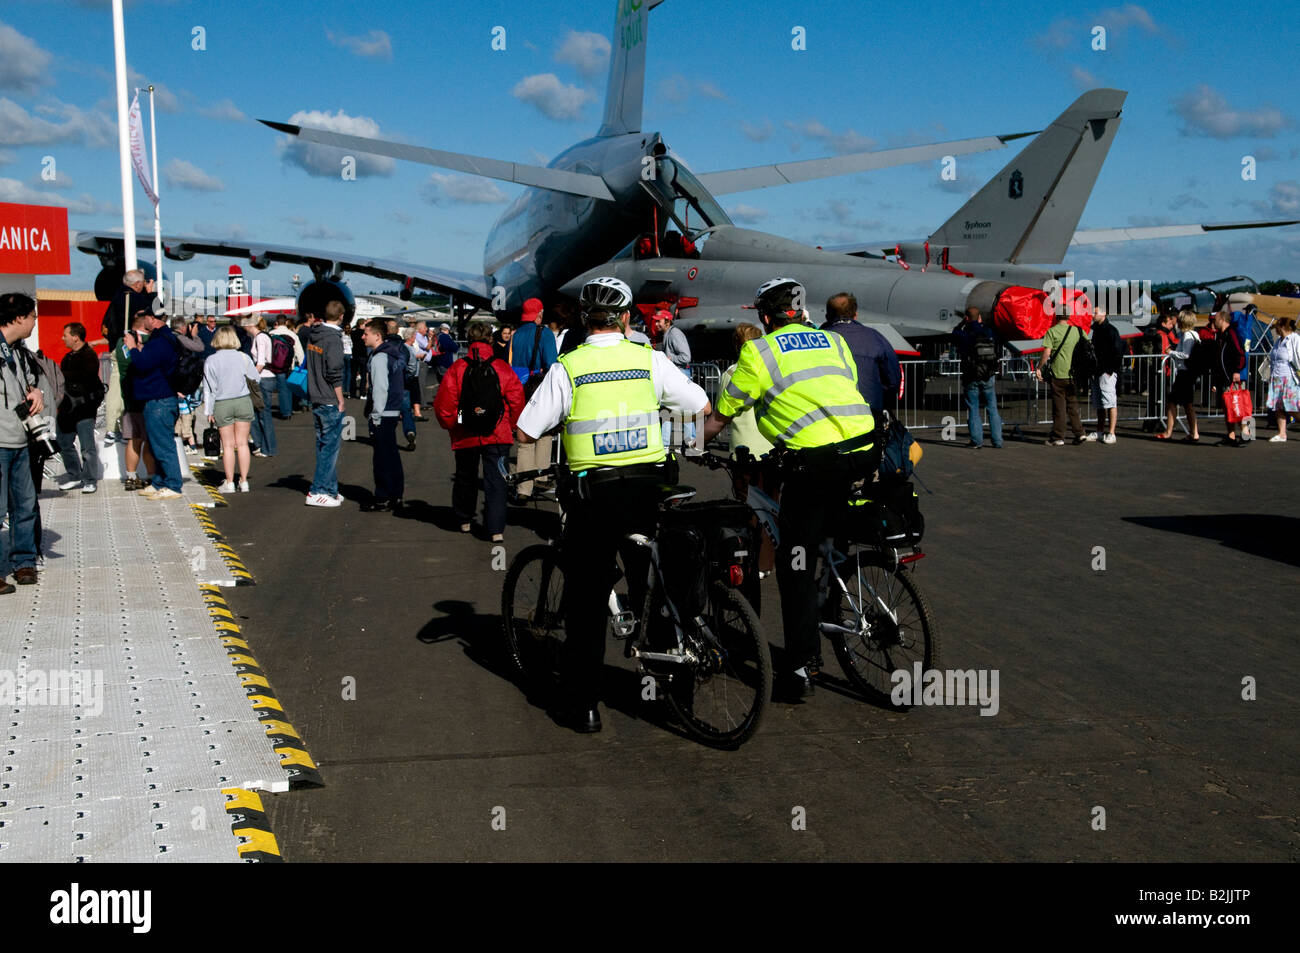 Two 2 police men on bycycles in yellow jackets sitting talking at a public event at the Farnborough air show wide - Stock Image